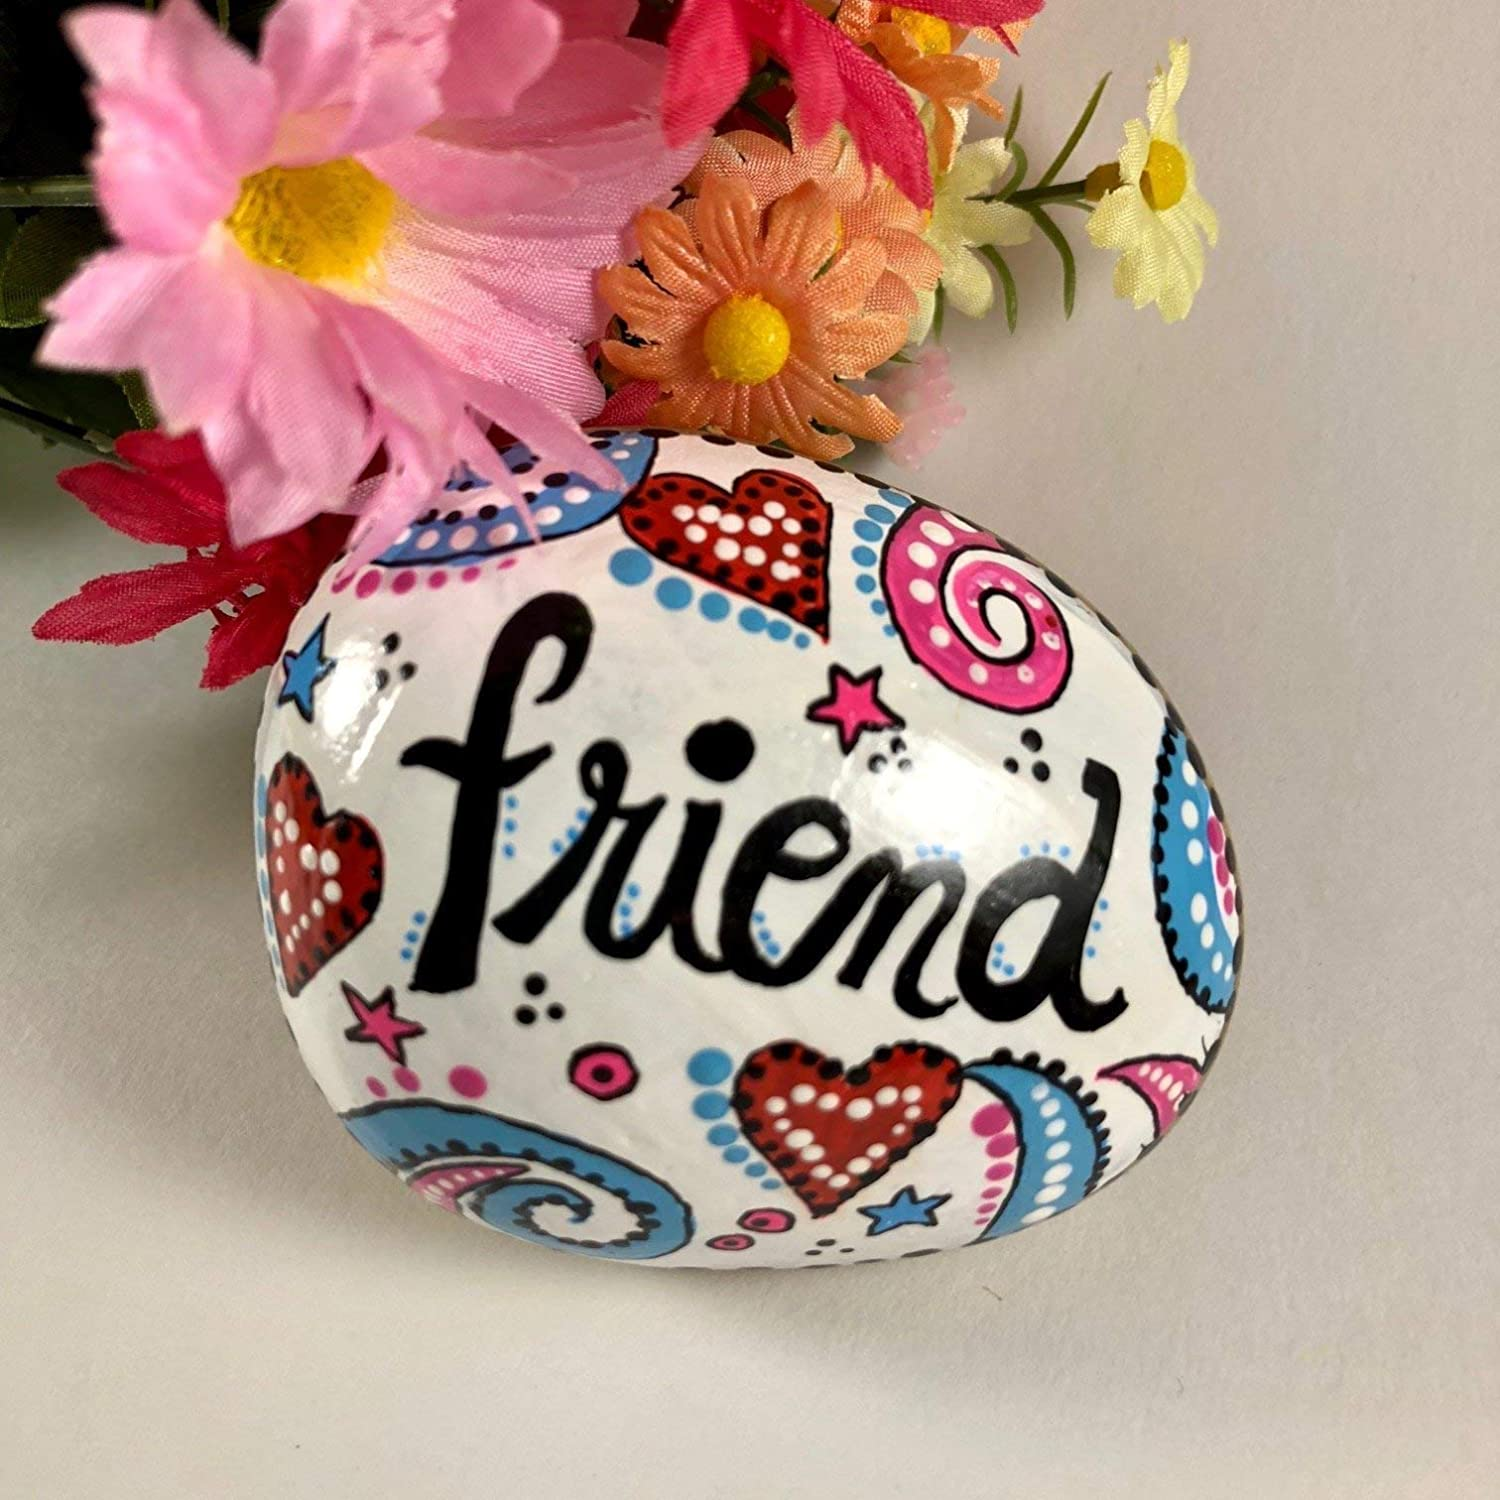 Friend Valentines Day painted rock